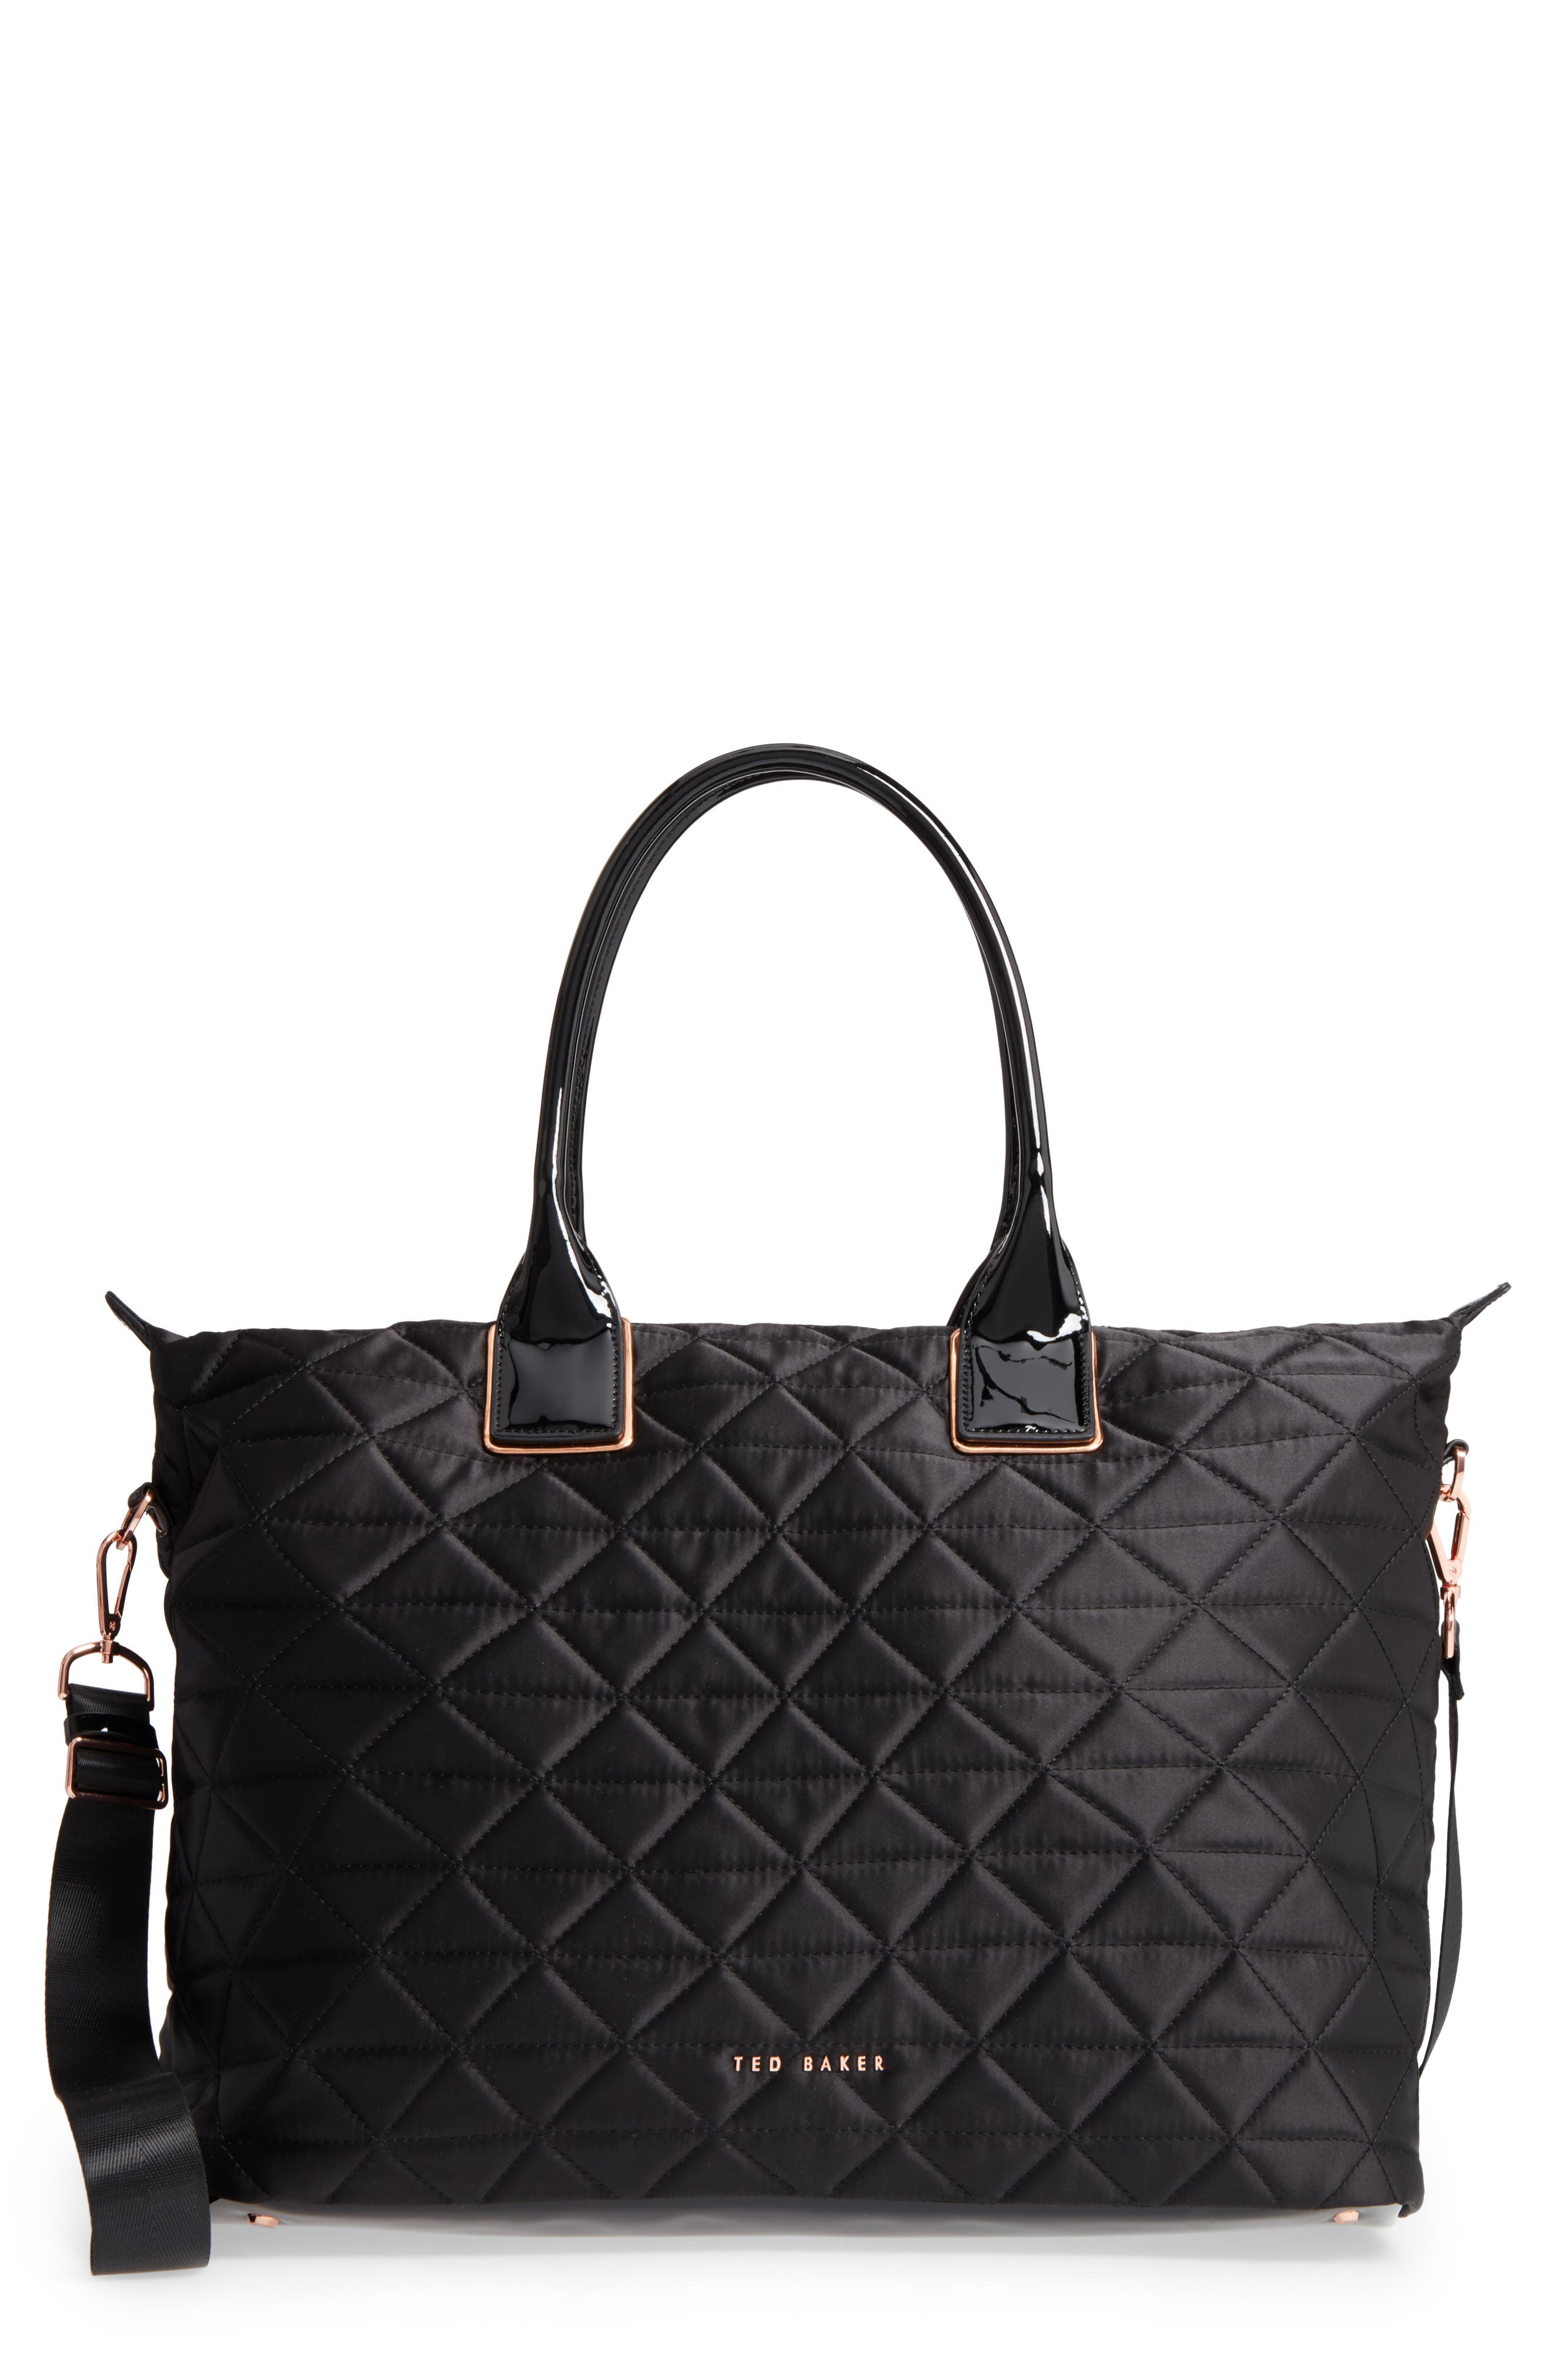 Ted Baker London Large Hilksi Quilted Tote | Nordstrom : ted baker quilted tote bag - Adamdwight.com